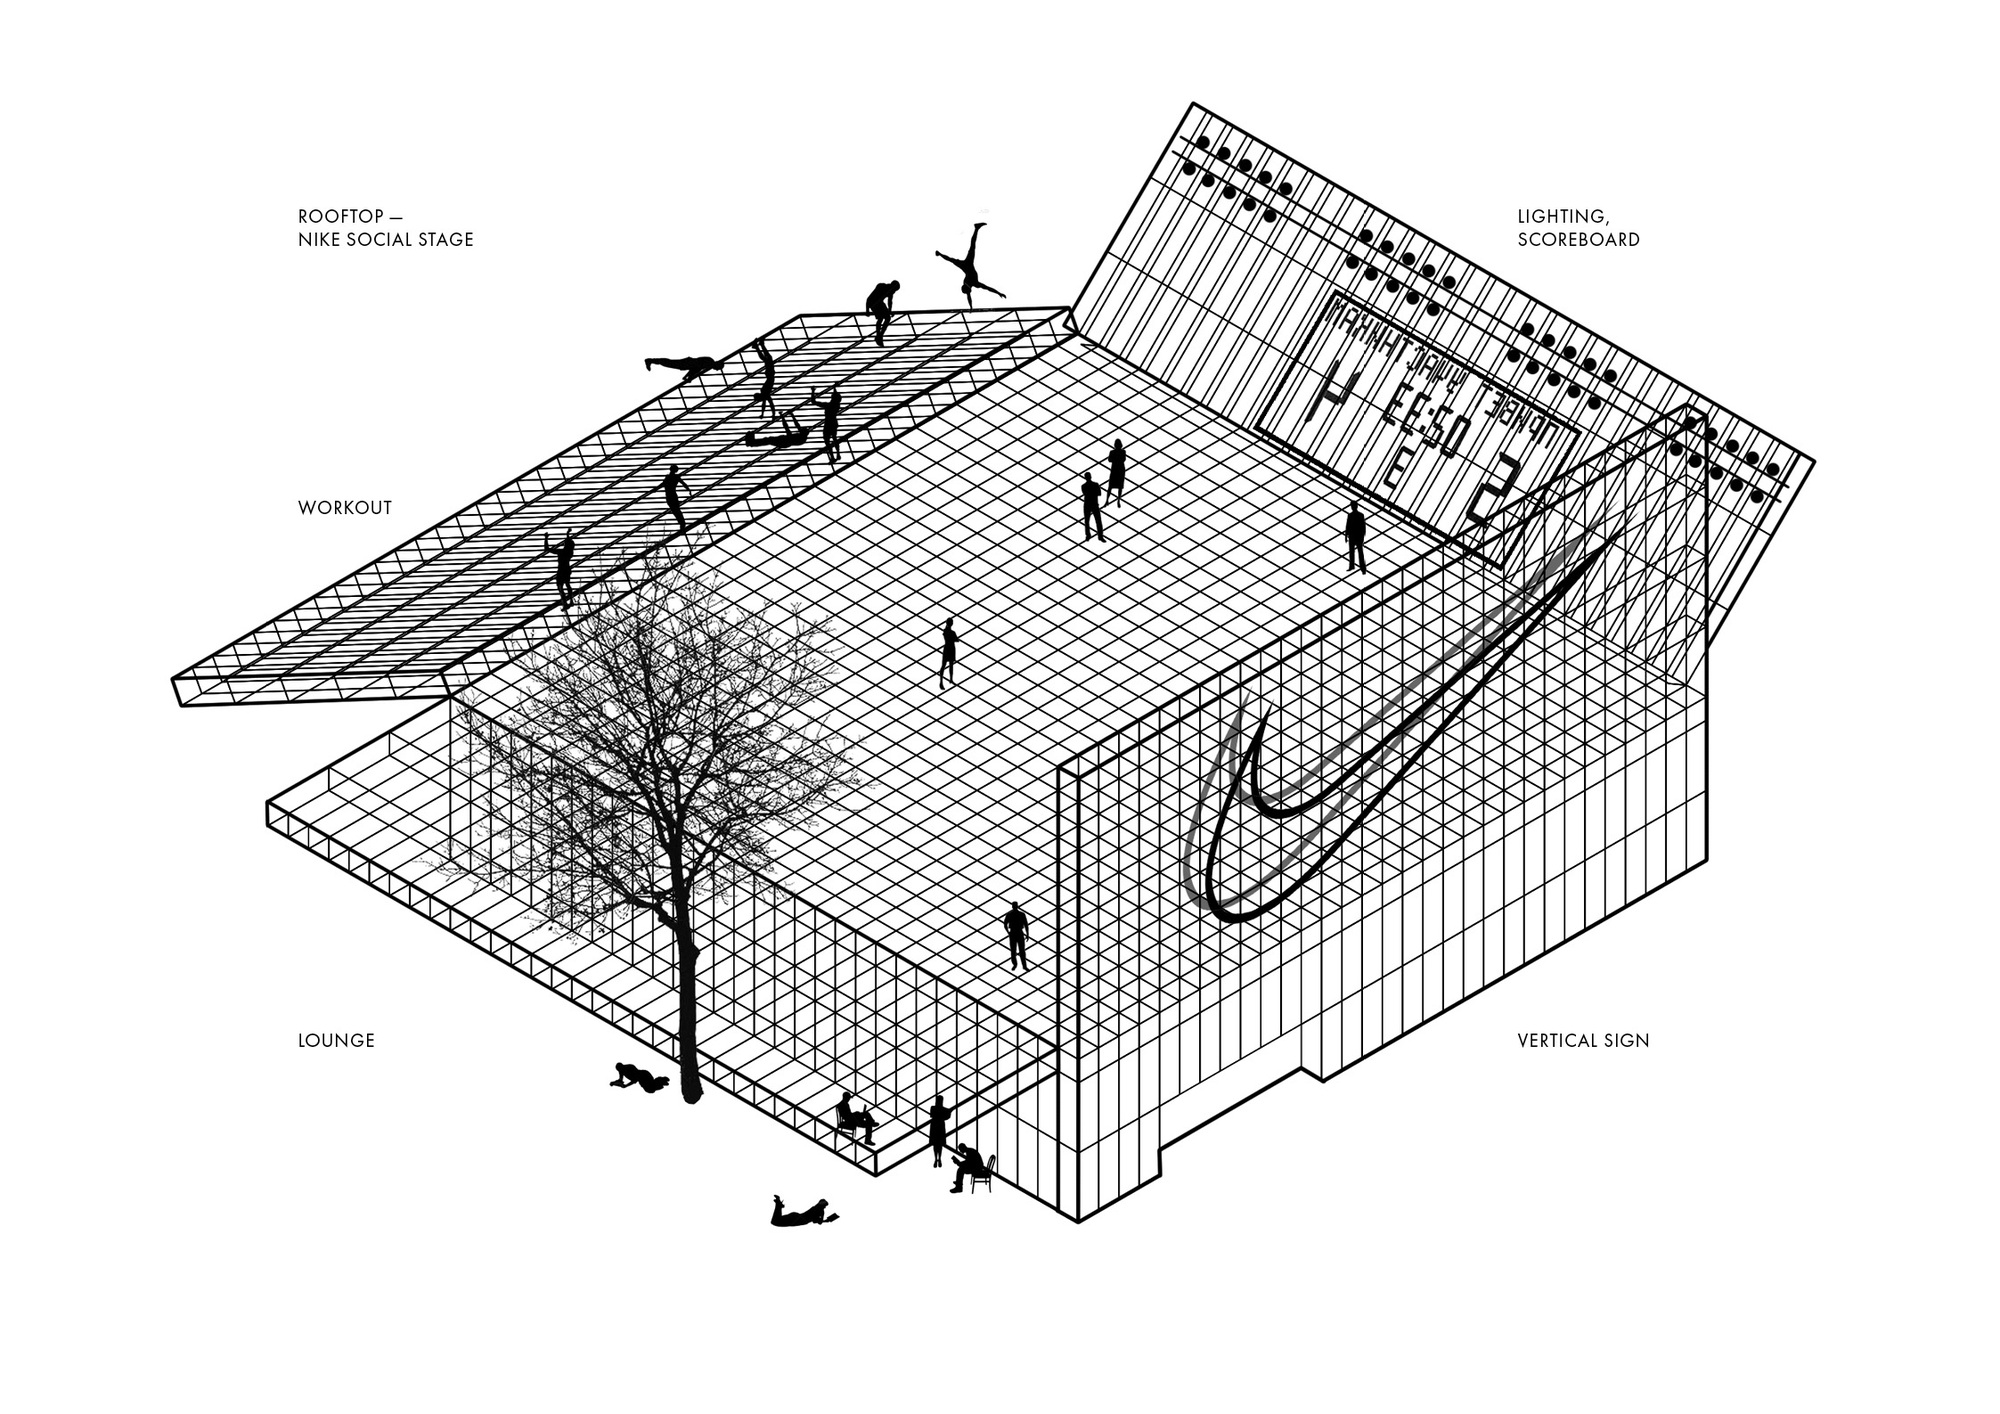 KOSMOS Architects Wins Competition for Landmark Nike Sports